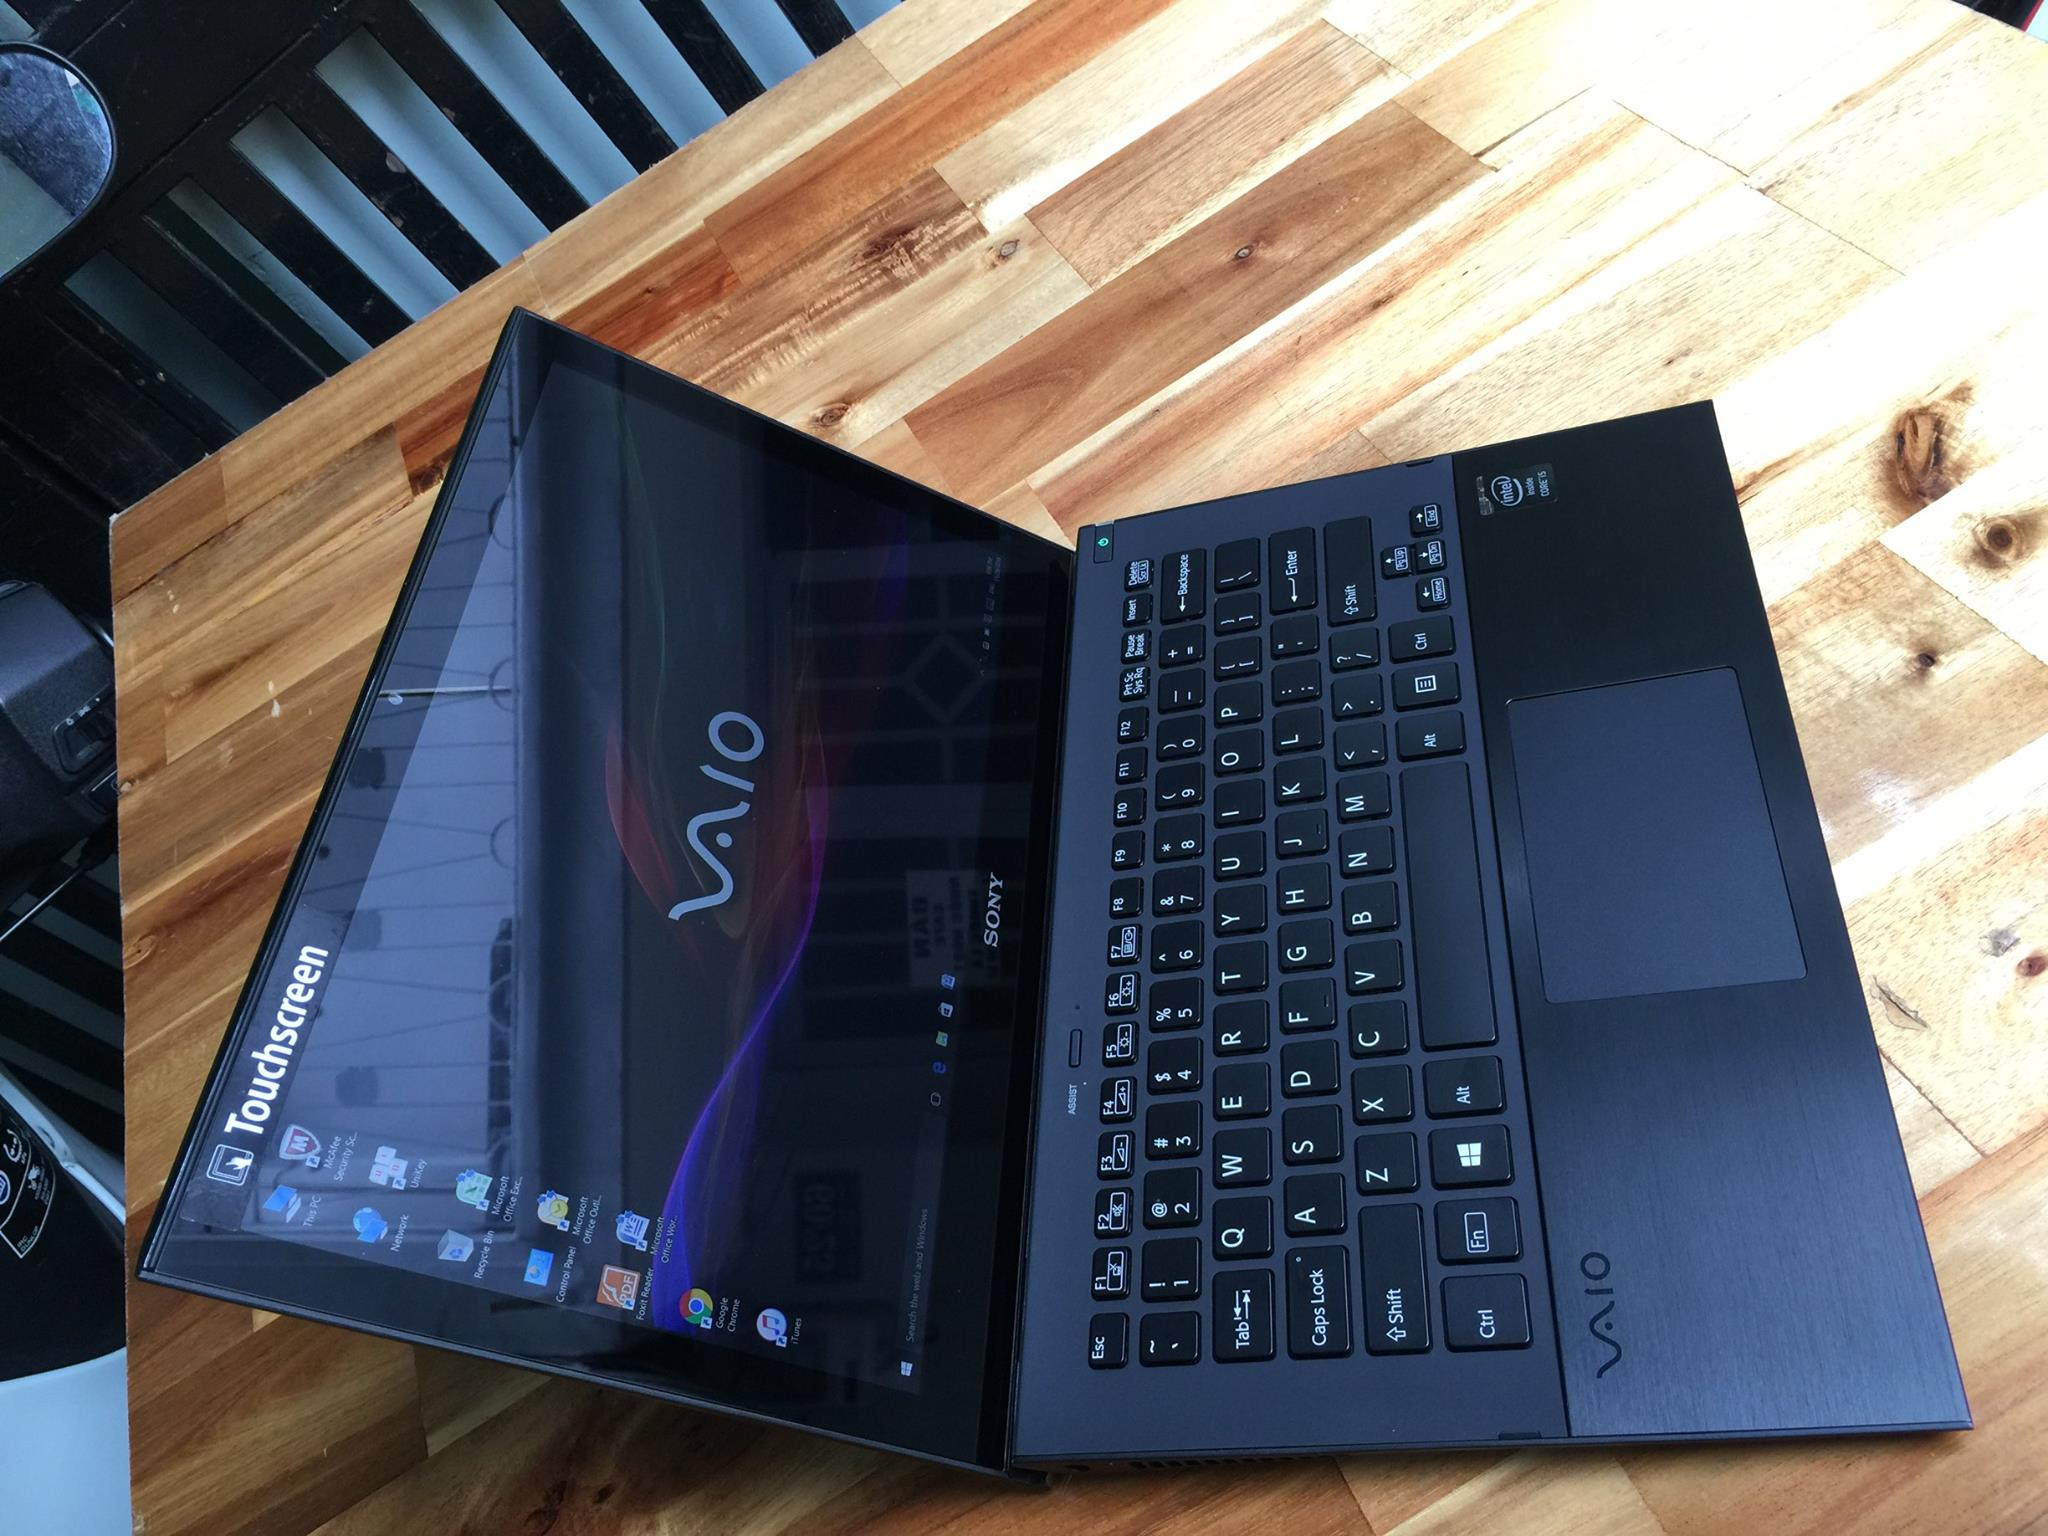 Laptop ultralbook sonyvaio SVP13. i5 4200, 4G4